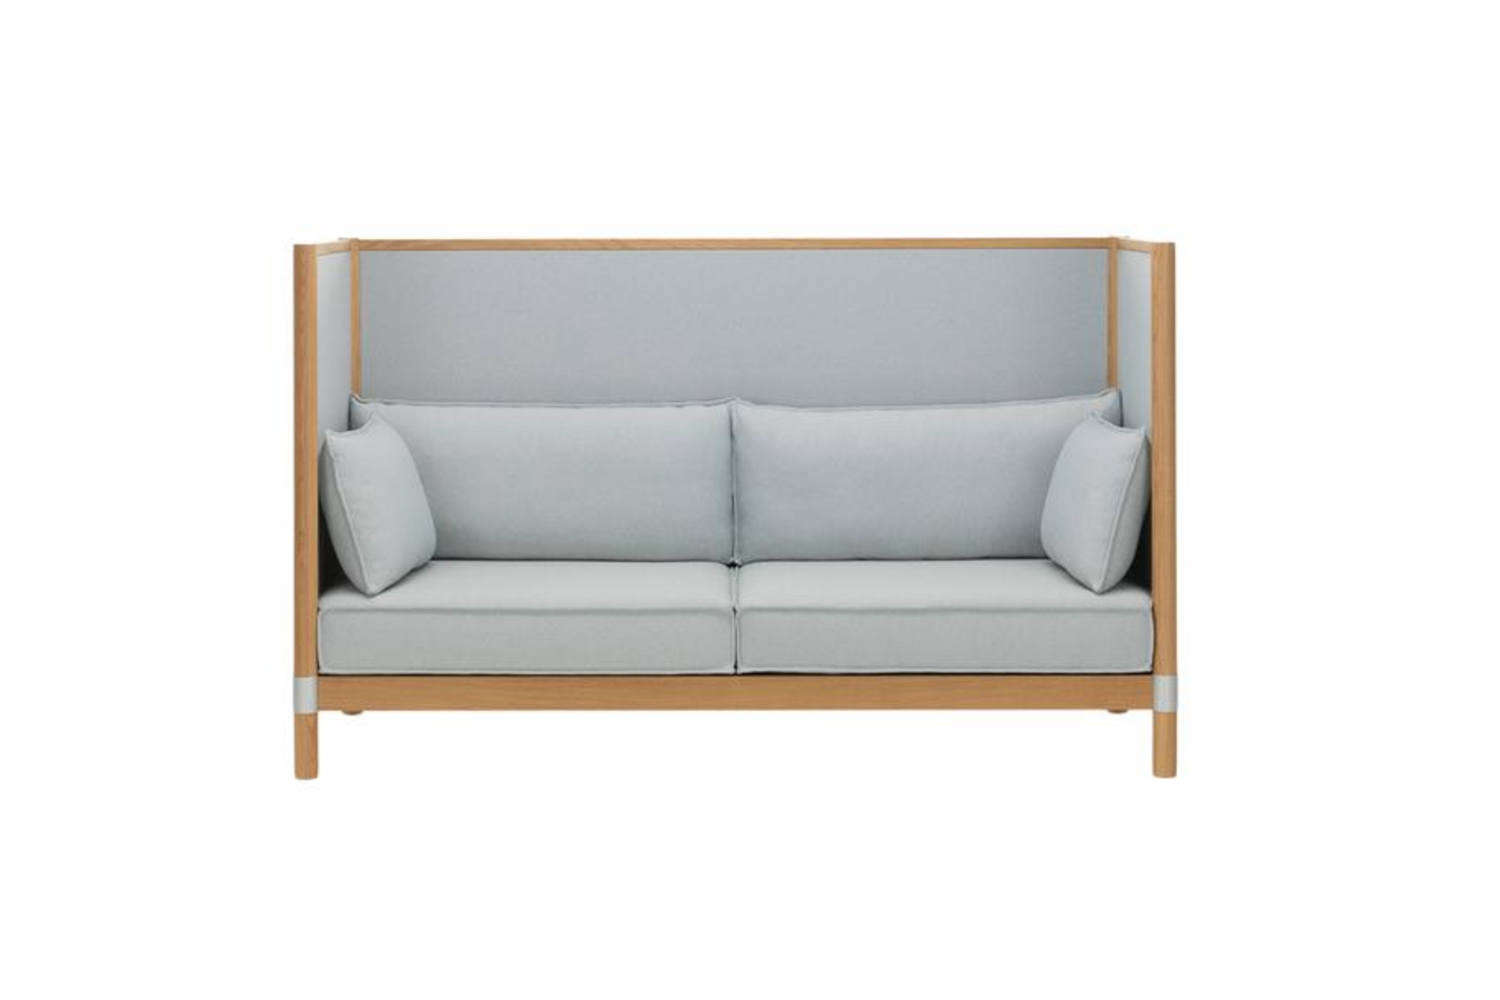 Another one from the Bouroullec brothers for Vitra, the Cyl Highback Sofa has a solid oak frame and upholstered panels and cushion in a host of colorful textiles; $loading=